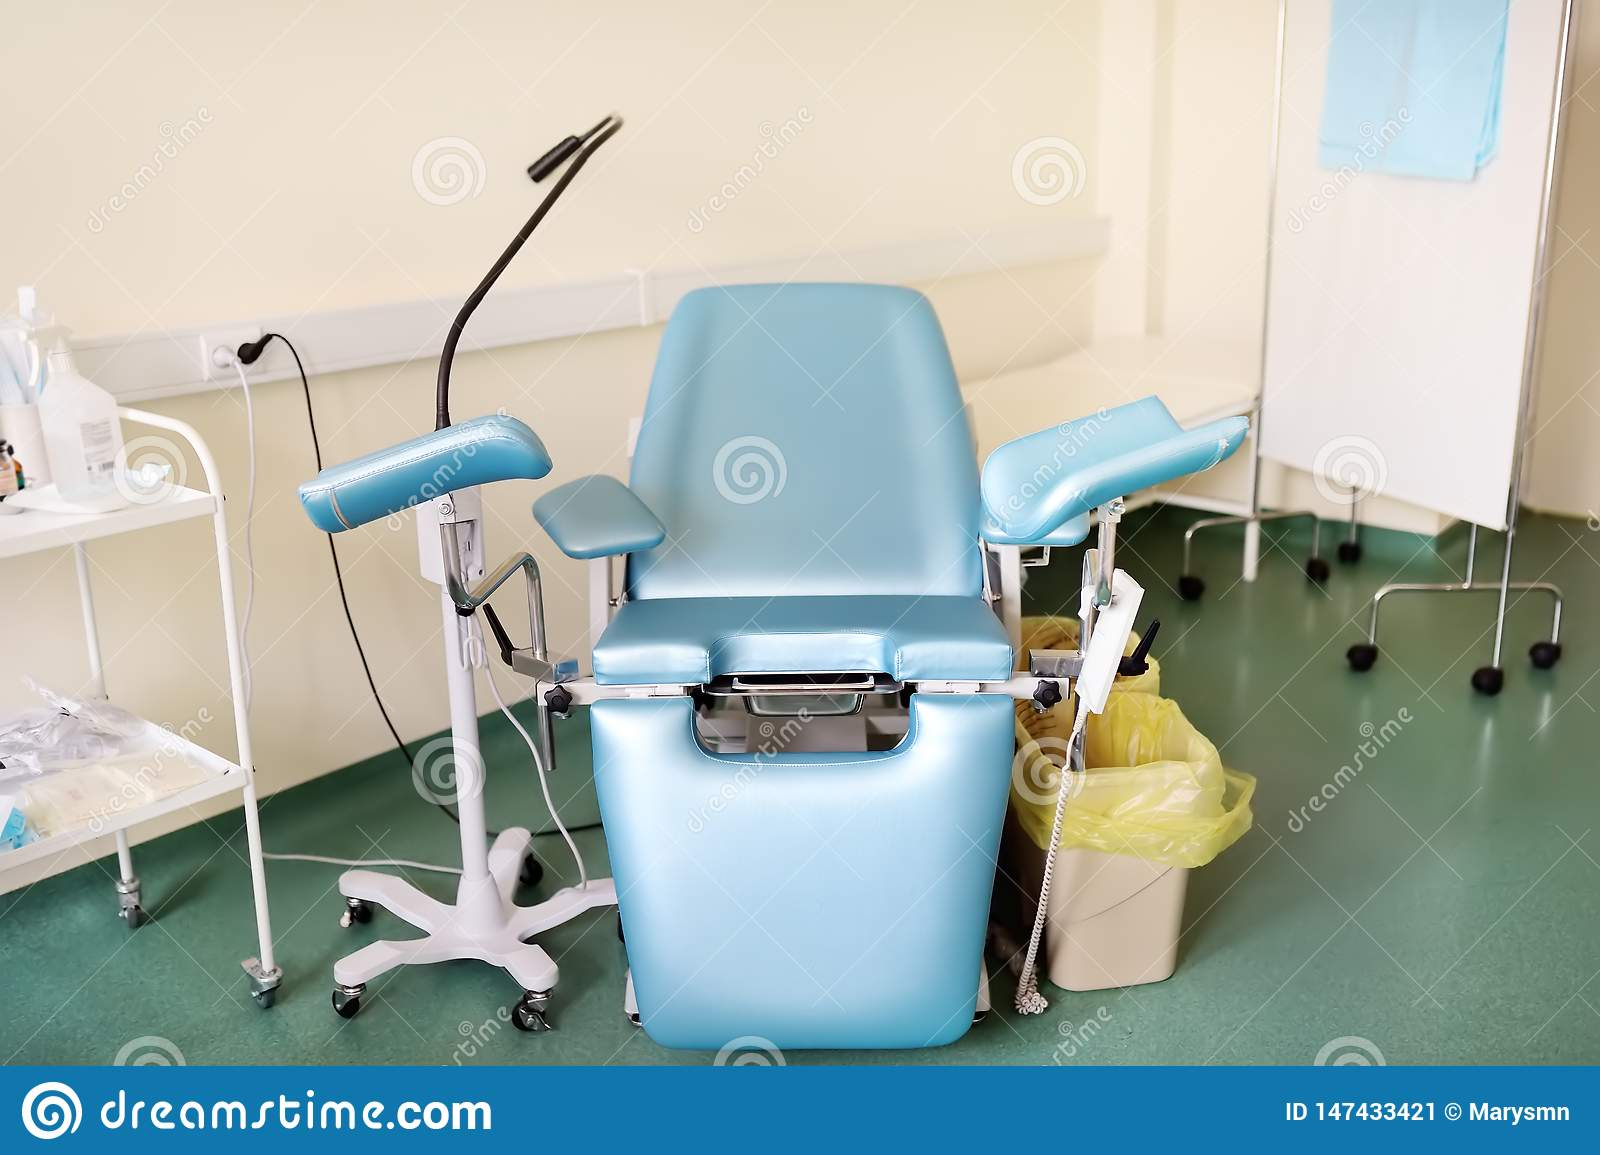 Gynecology room with gynecology chair on clinic or hospital